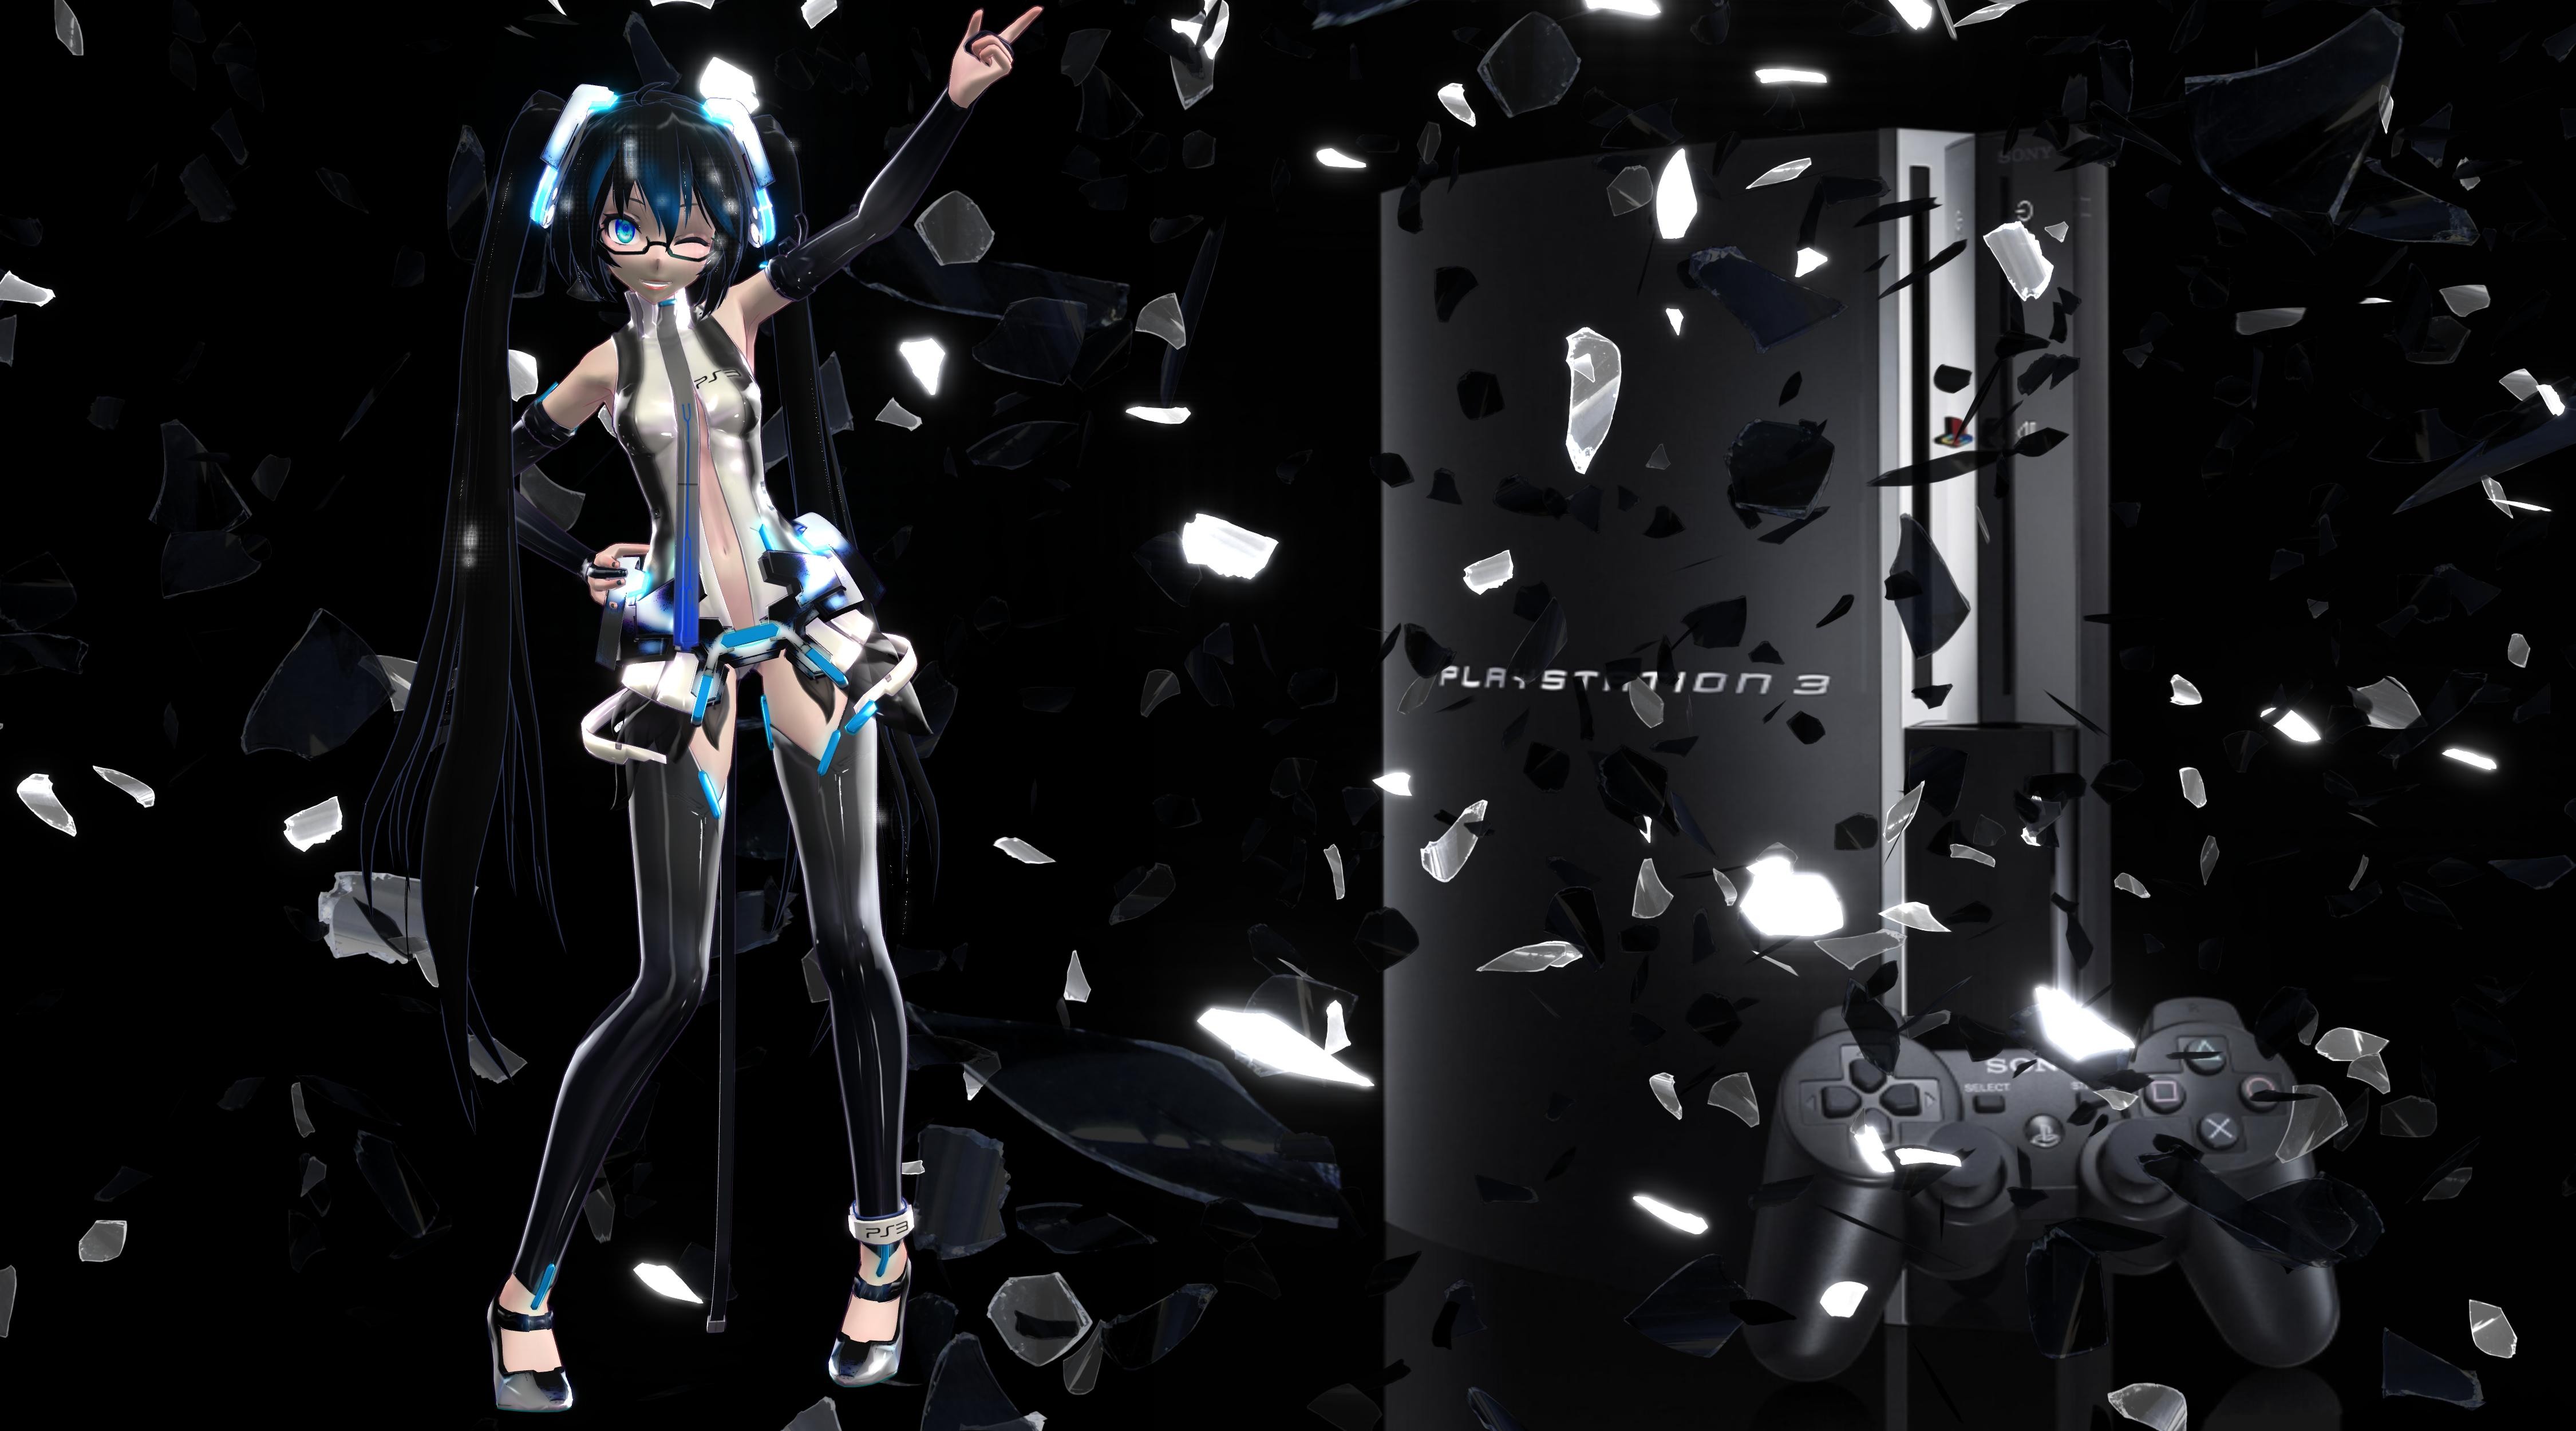 Ps3 themes 4500x2500